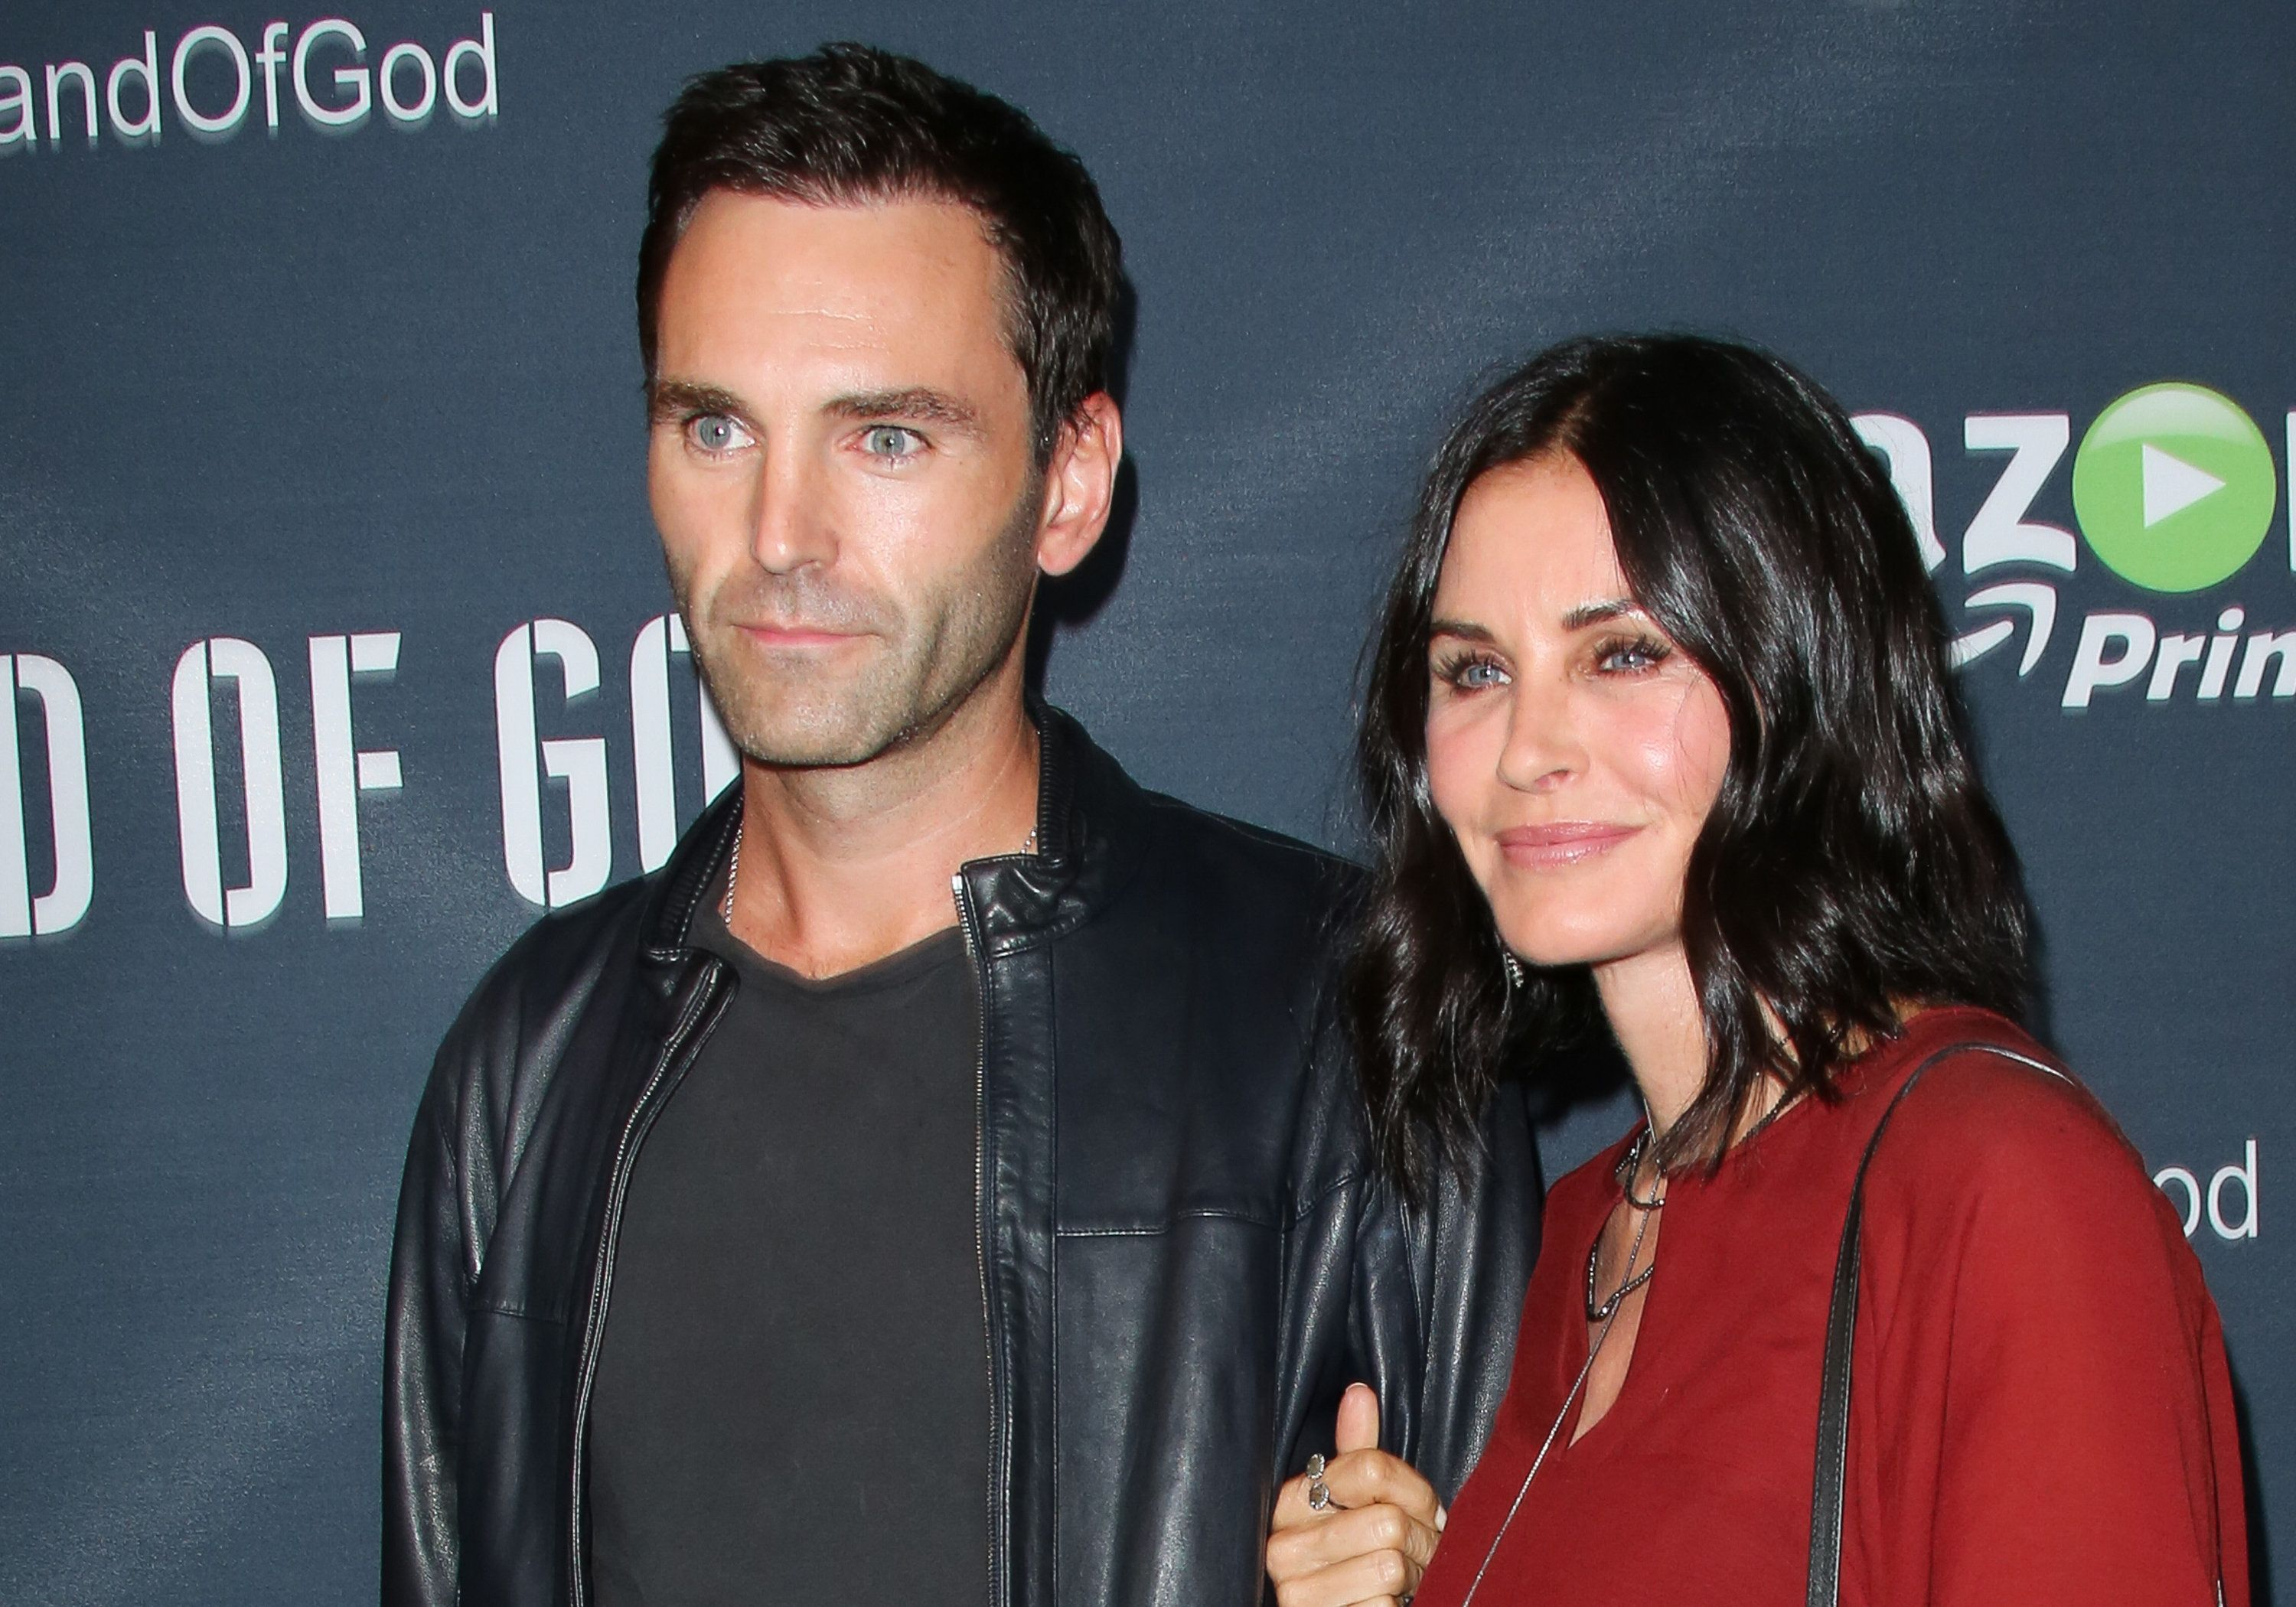 LOS ANGELES, CA - AUGUST 19:  Screen Writer Johnny McDaid (L) and Actress Courteney Cox (R) attend the premiere of Amazon's series 'Hand Of God' at Ace Theater Downtown LA on August 19, 2015 in Los Angeles, California.  (Photo by Paul Archuleta/FilmMagic)